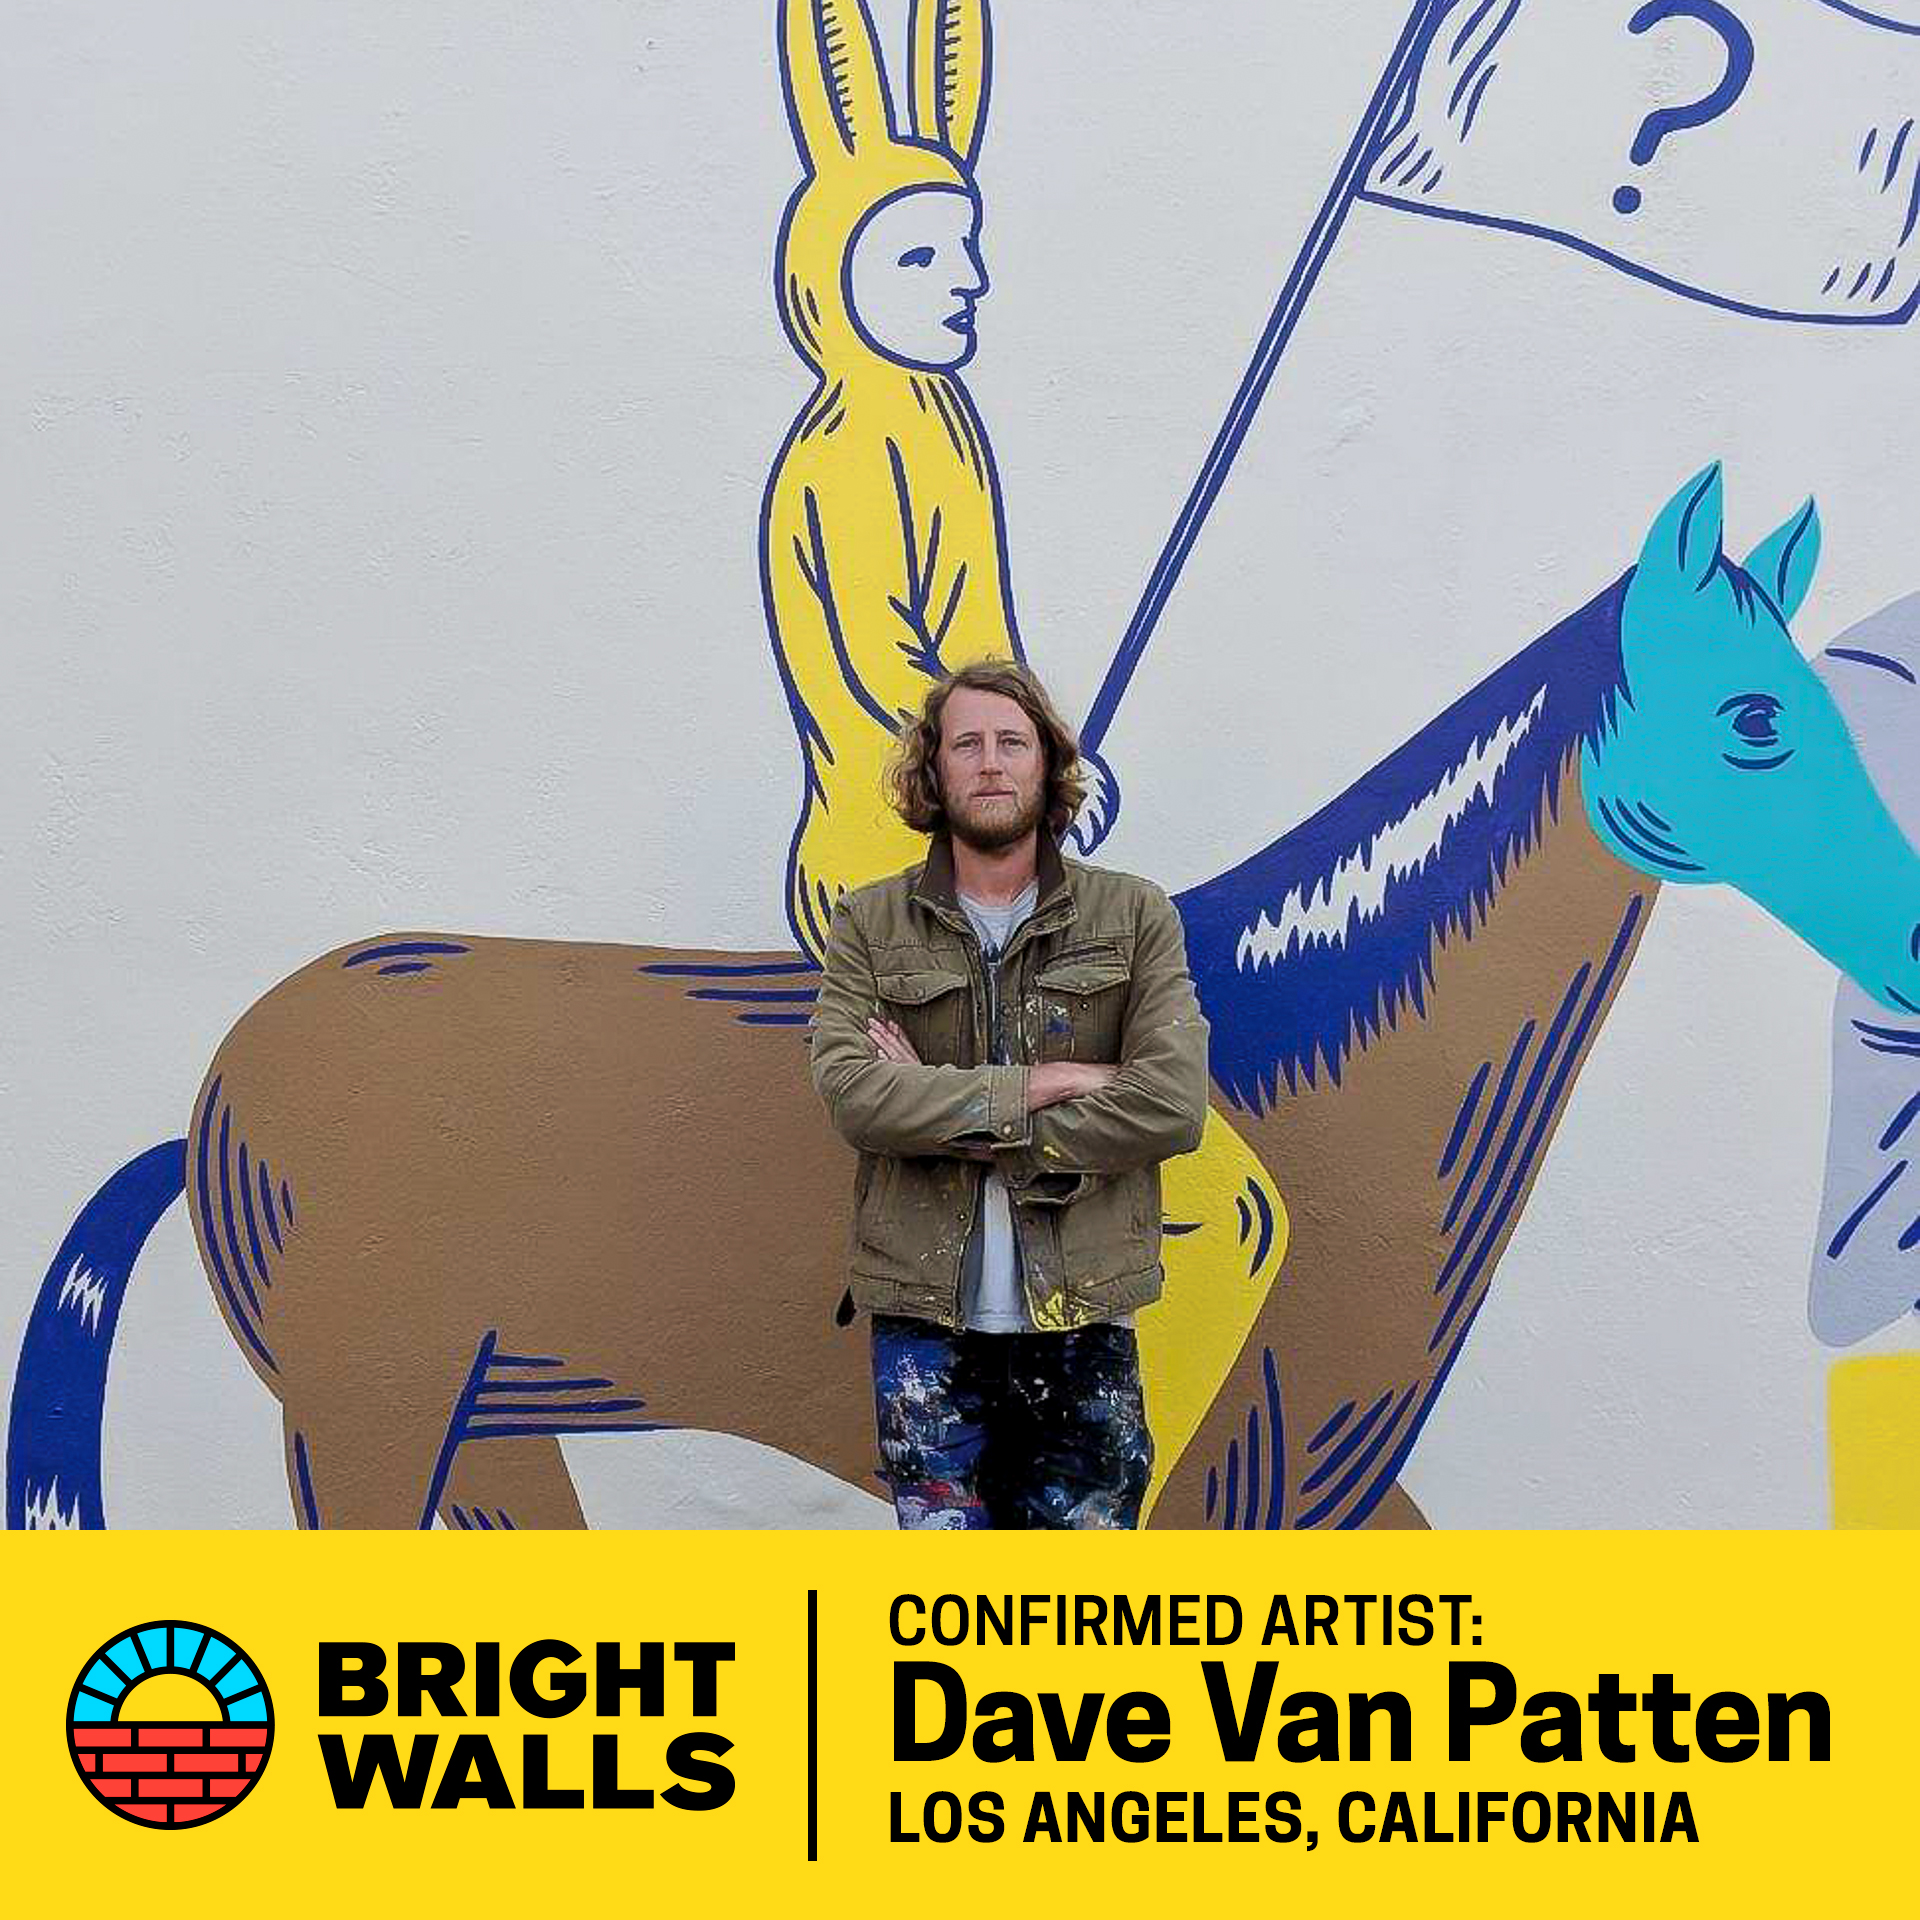 "Dave Van PattenLos Angeles, California - Dave Van Patten is a Los Angeles based artist whose work is centered between dreamlike absurdism and psychedelic surrealism. His trademark childlike simplicity details stories from ethical fables to disturbingly dark humor.Dave has self-published several graphic novel zines and twisted ""children's books for grown ups,"" and though his focus is on illustration, he uses a combination of paper cut outs, acrylic paints and ink to tell his stories.His work has been shown in Juxtapoz Magazine, Intentional Quarterly, Mt. Hope, L.A. Record Magazine, and various L.A. based art magazines. Dave was also featured in 2016 and 2017 as an artist in world-renowned mural organization, POW!WOW! Currently, Dave is adapting a short story from Arthur Bradford into a full-length graphic novel."